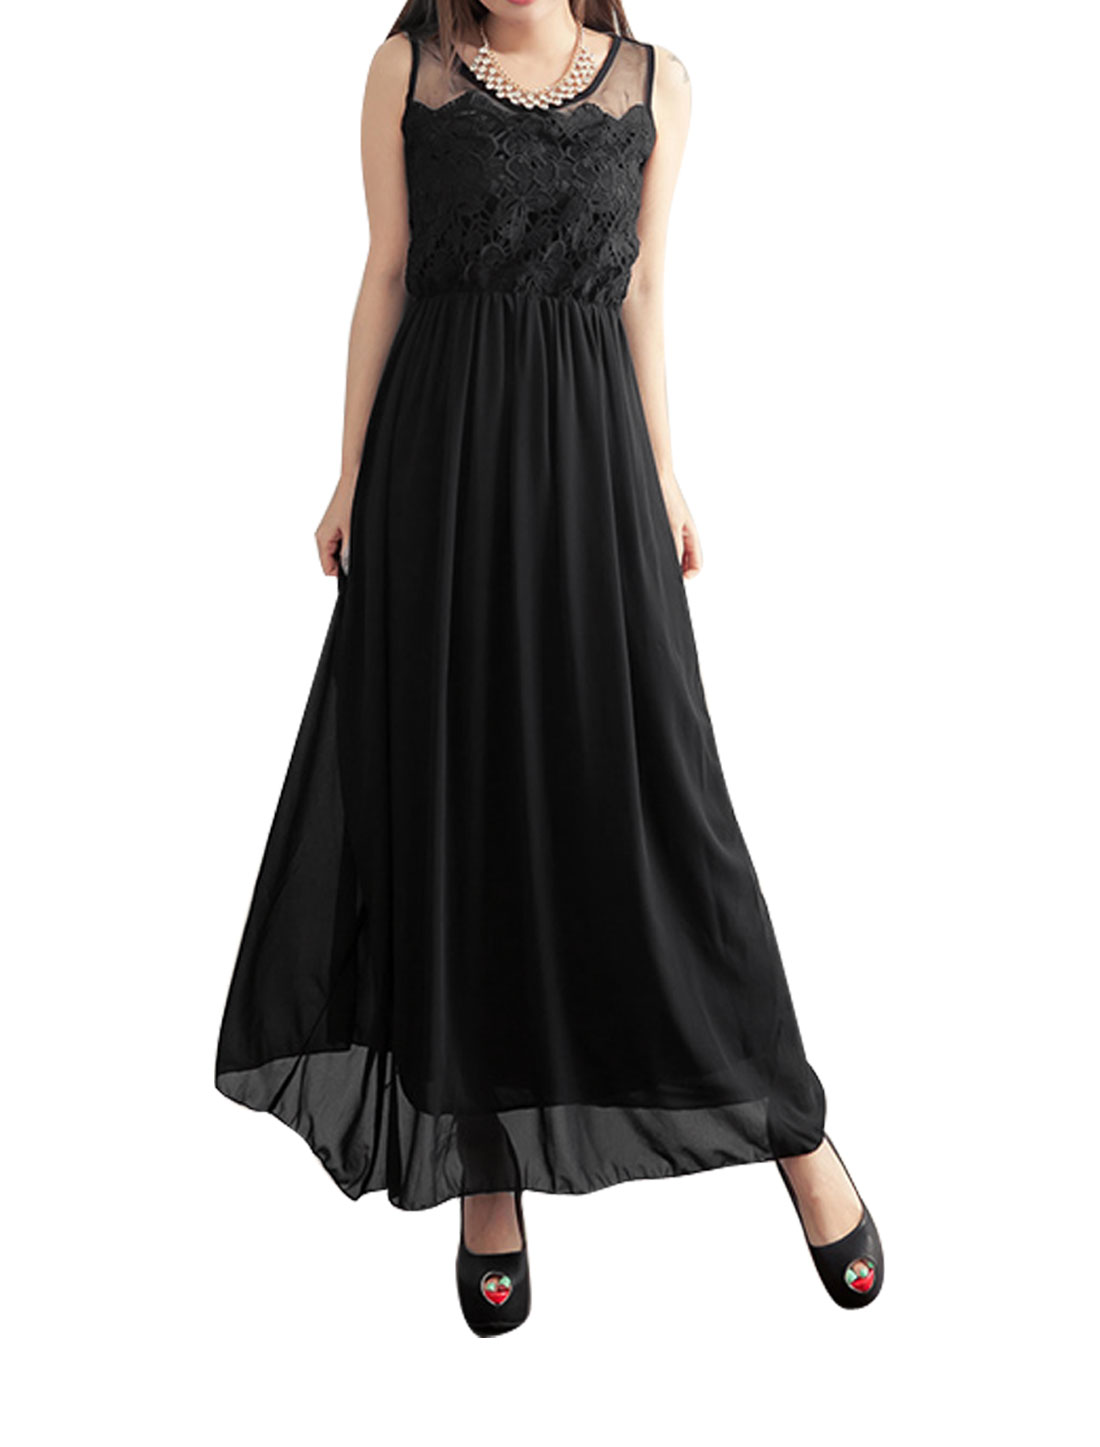 Ladies Bohemian Chiffon Sleeveless Elastic Waist Long Sundress Dress Black XS